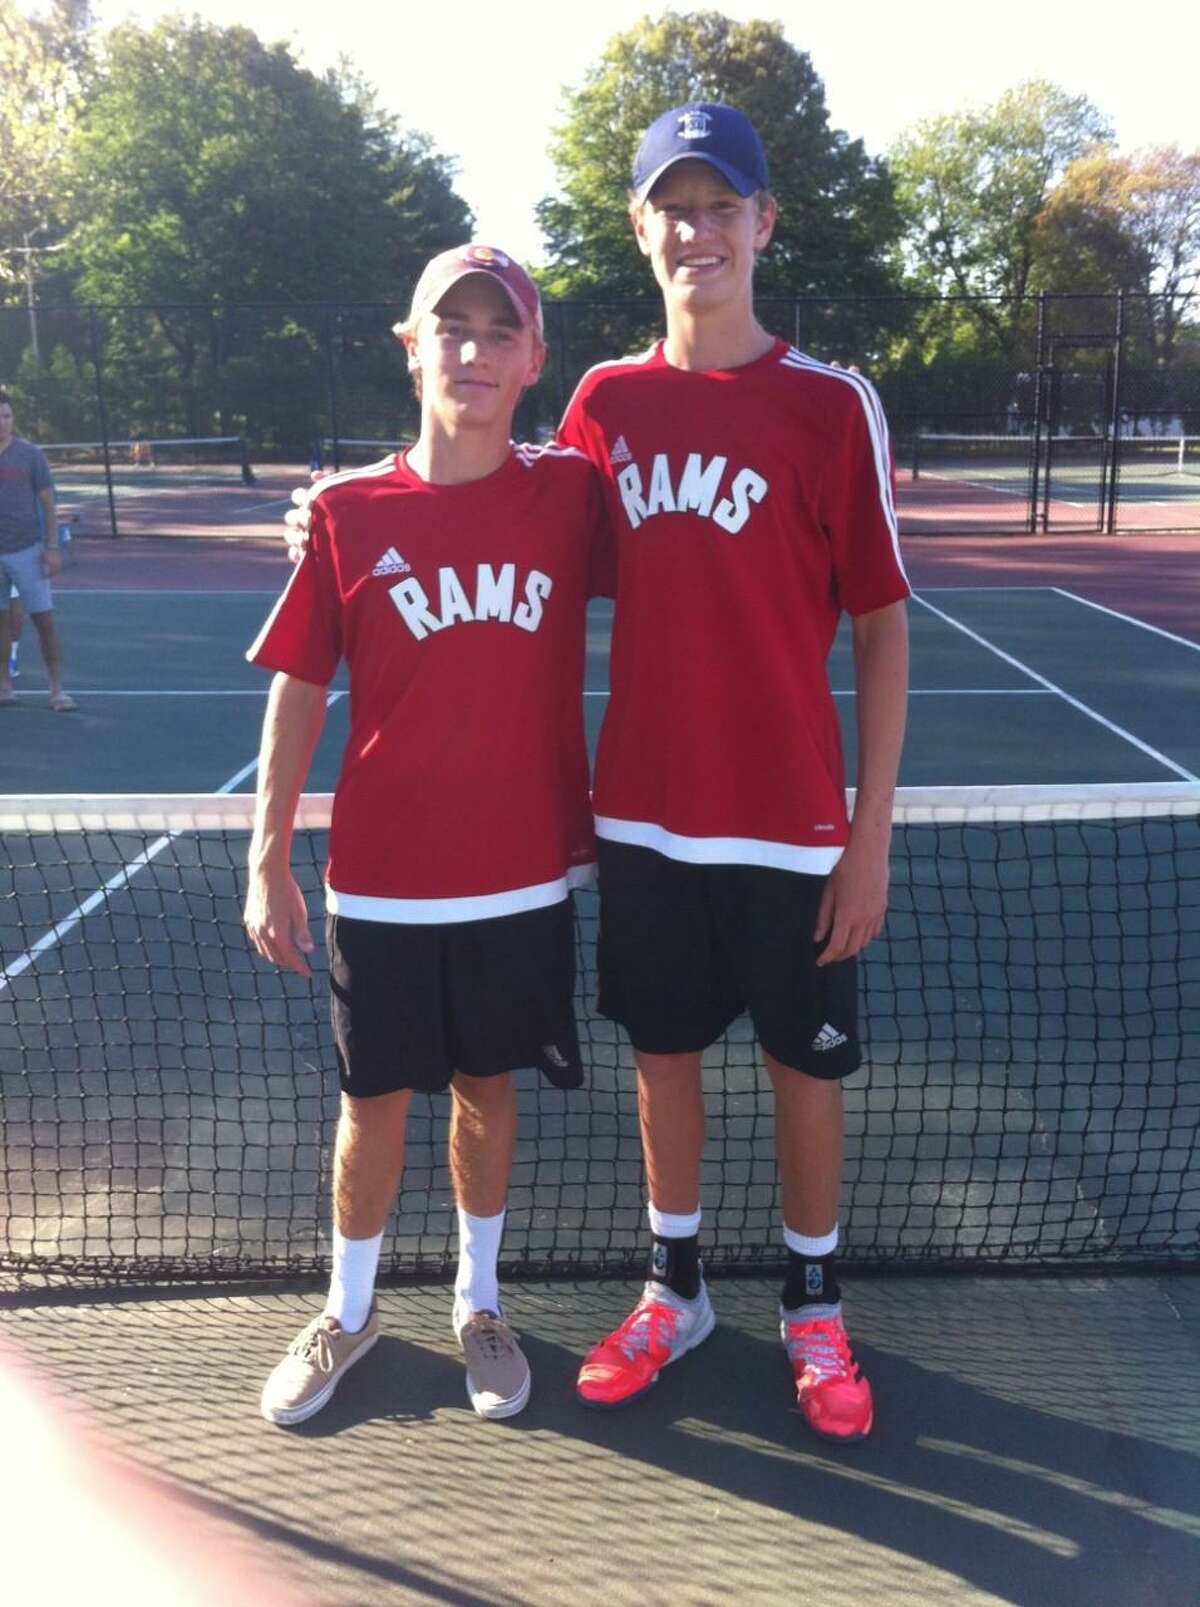 Luke Crowley, left, and Matthew Brand of New Canaan won the Class L tournament doubles championship on Thursday at Conard High School in West Hartford. They defeated teammates Chris Greene and Jack O'Connor in the finals.